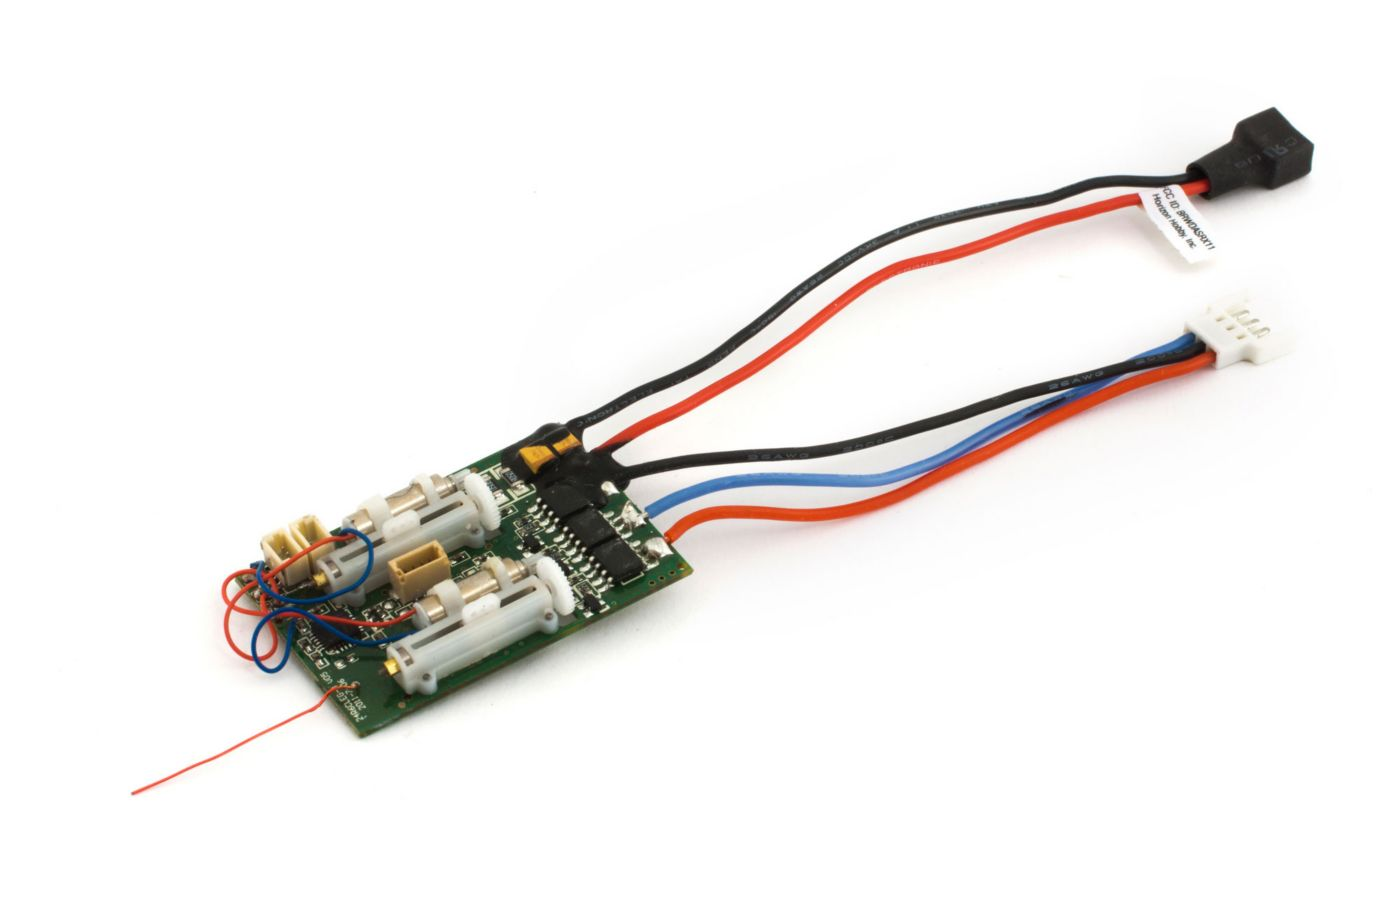 small resolution of image for dsm2 6 ch ultra micro as3x receiver bl esc from horizonhobby